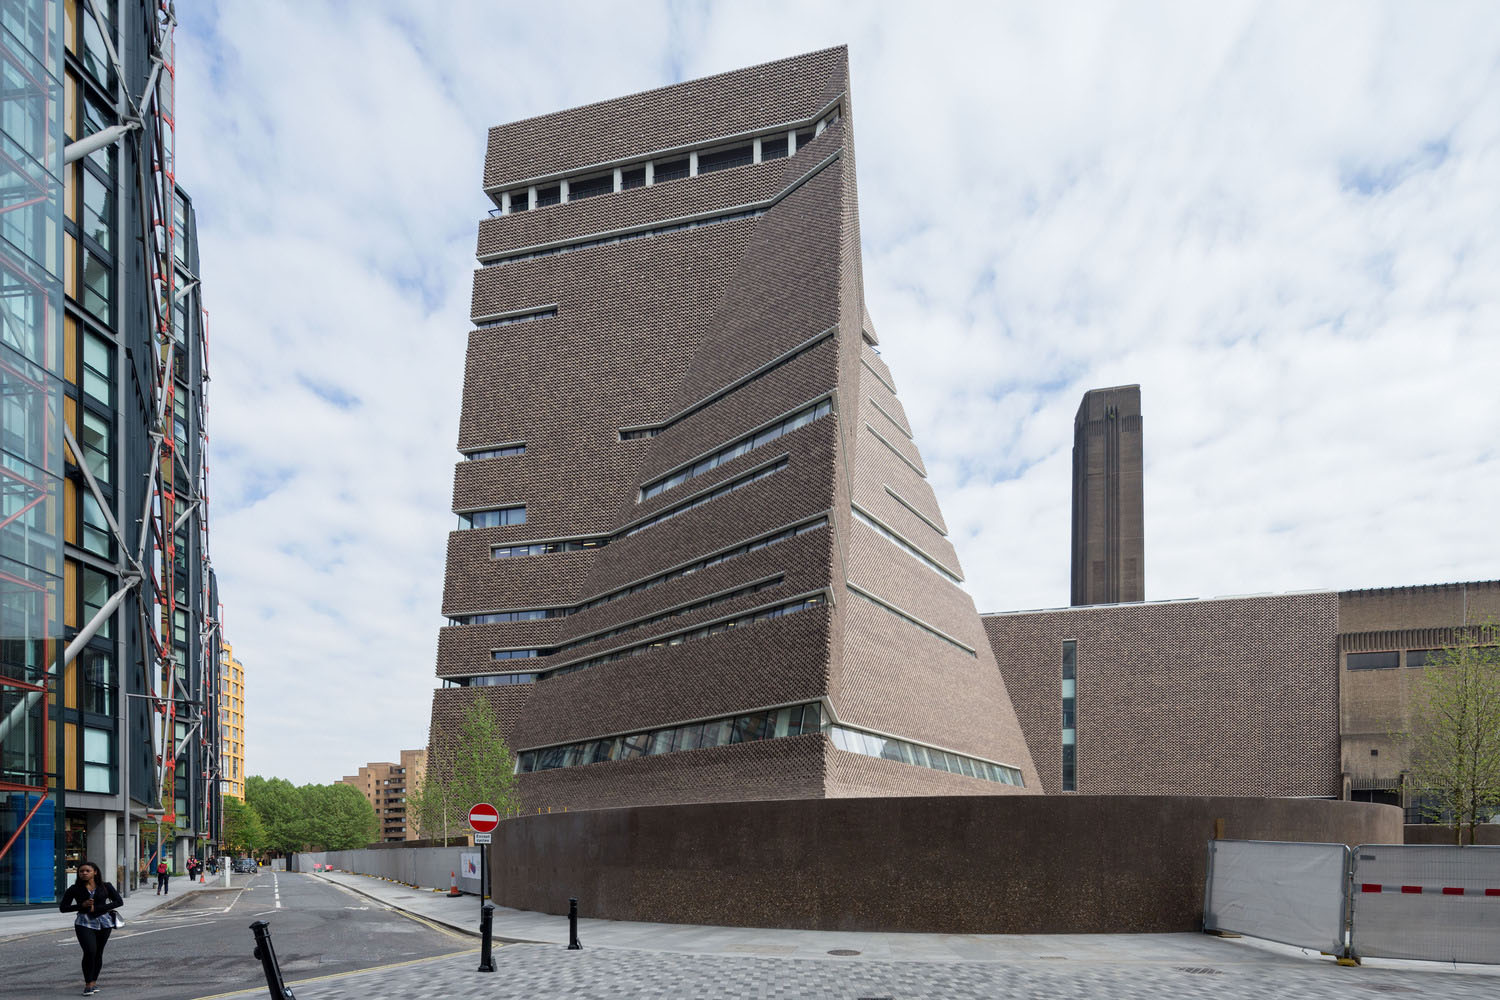 Tate Modern Switch House design by Herzog & de Meuron